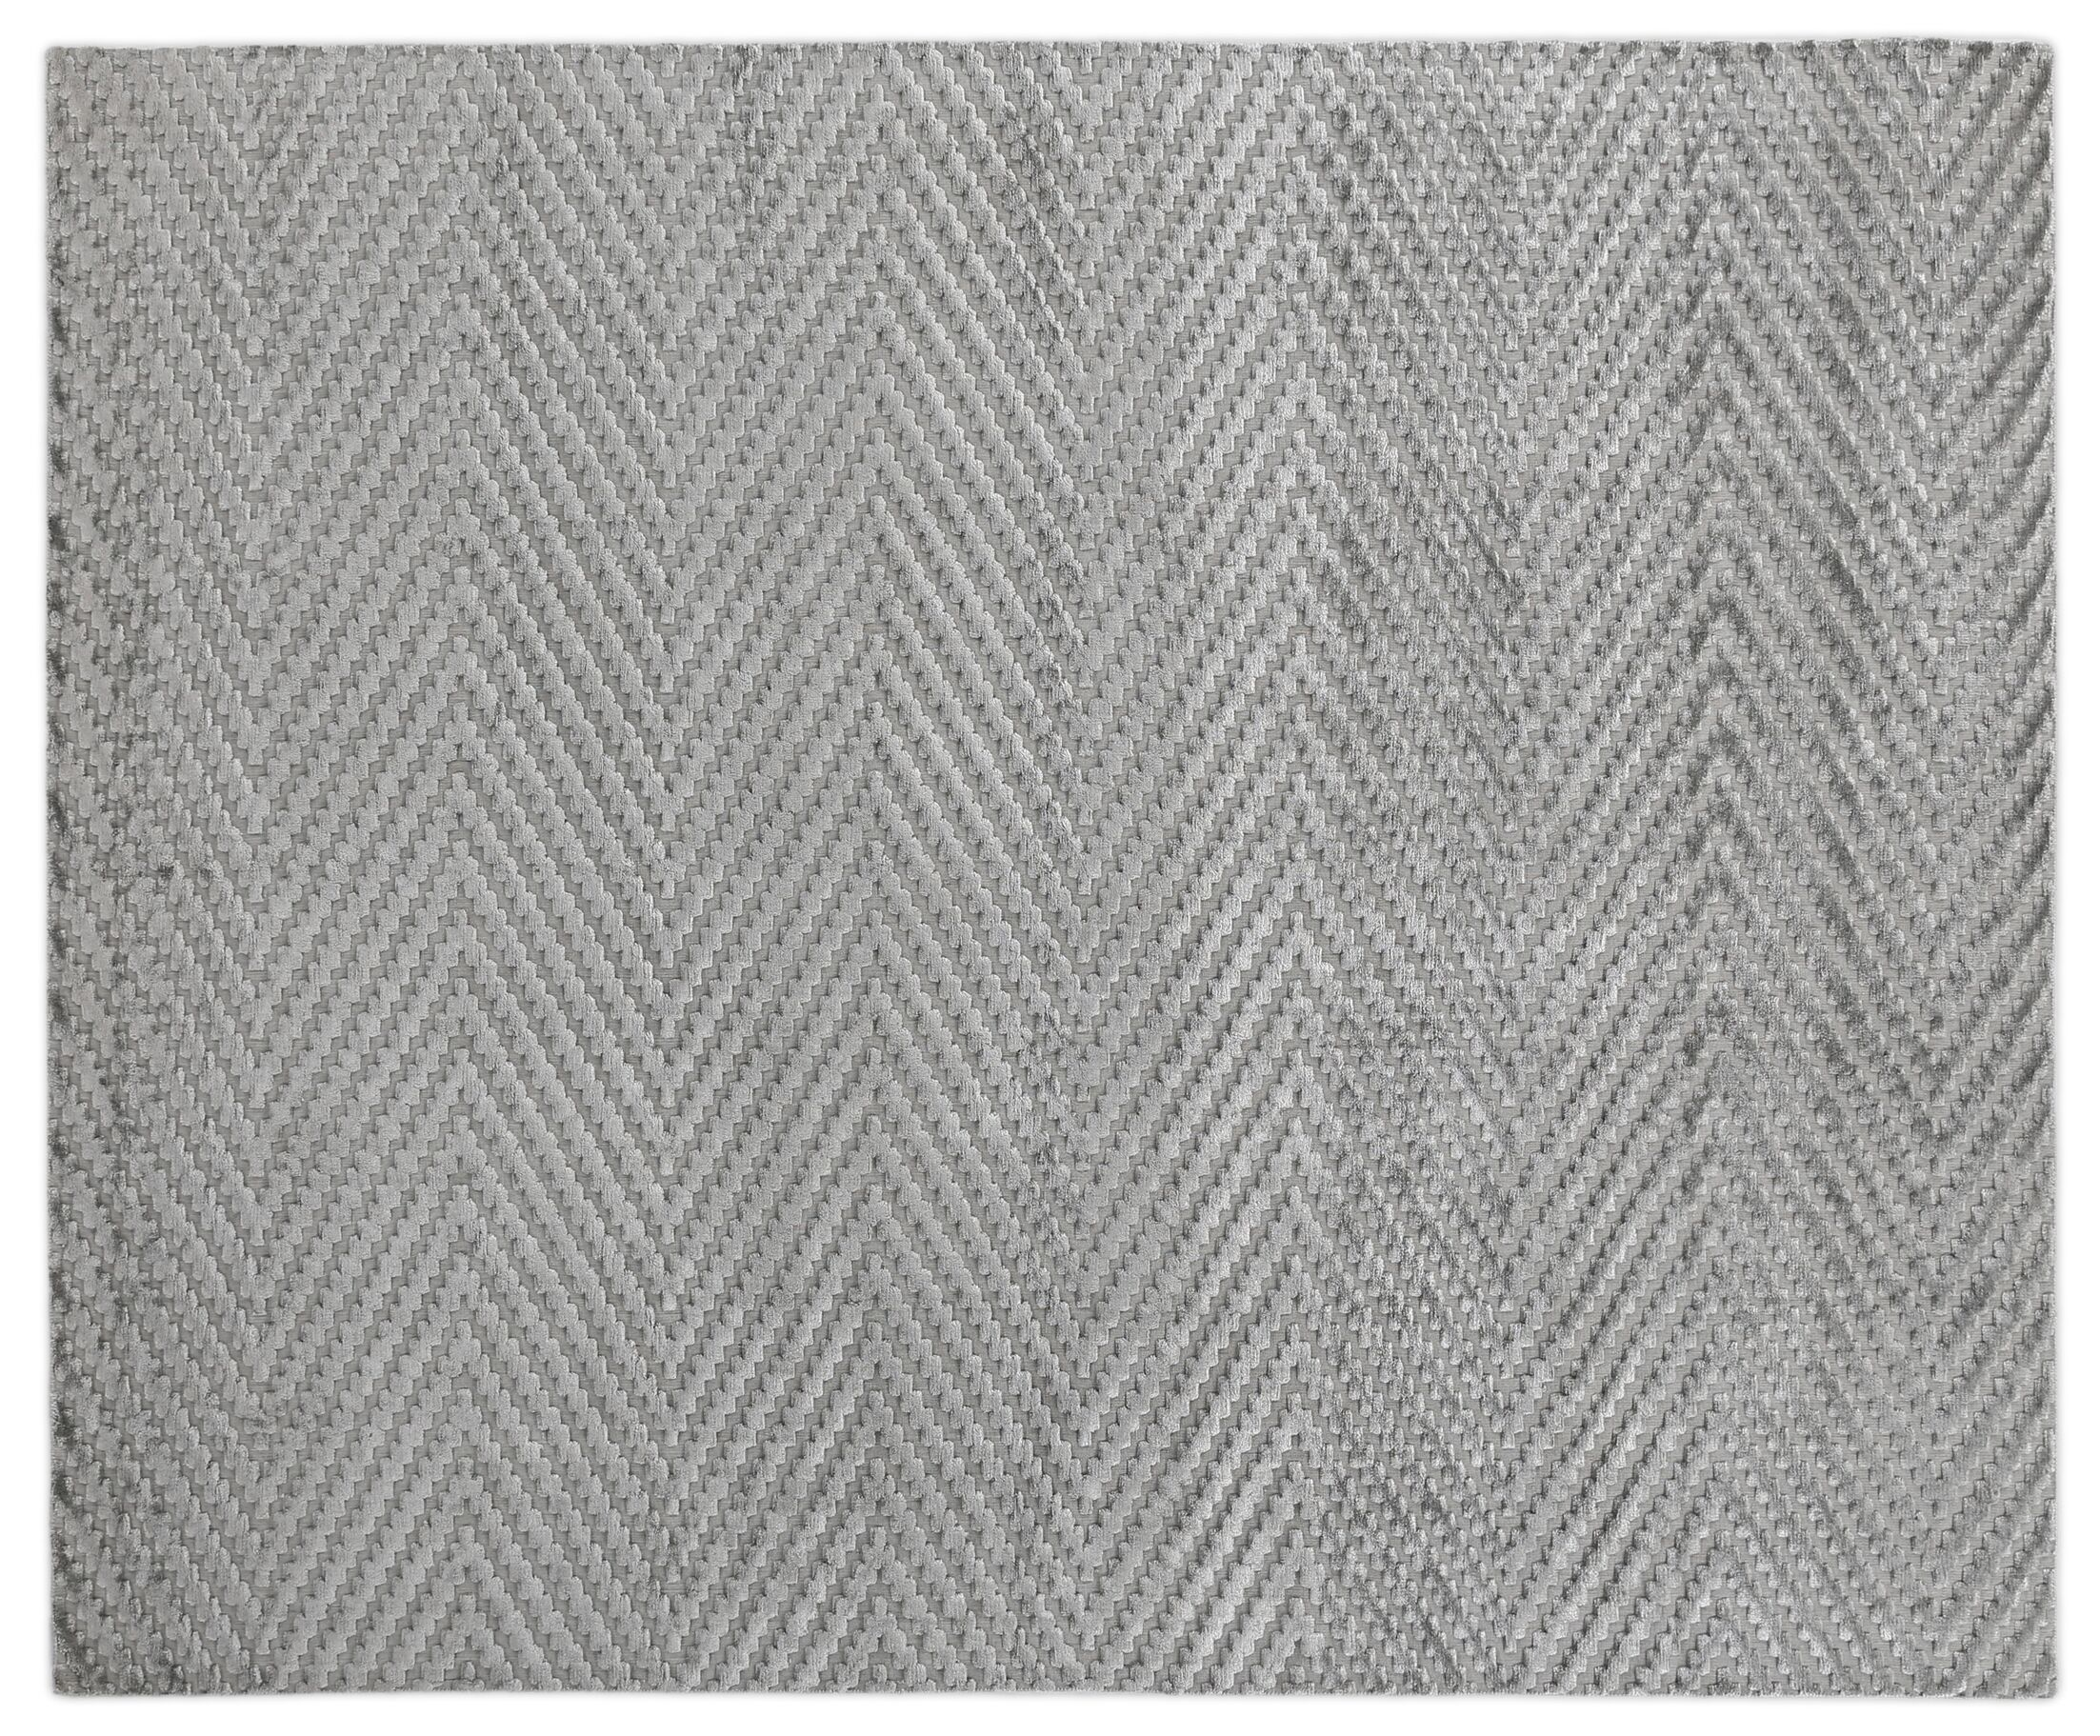 Kingsley Hand-Woven Gray Area Rug Rug Size: Rectangle 10' x 14'